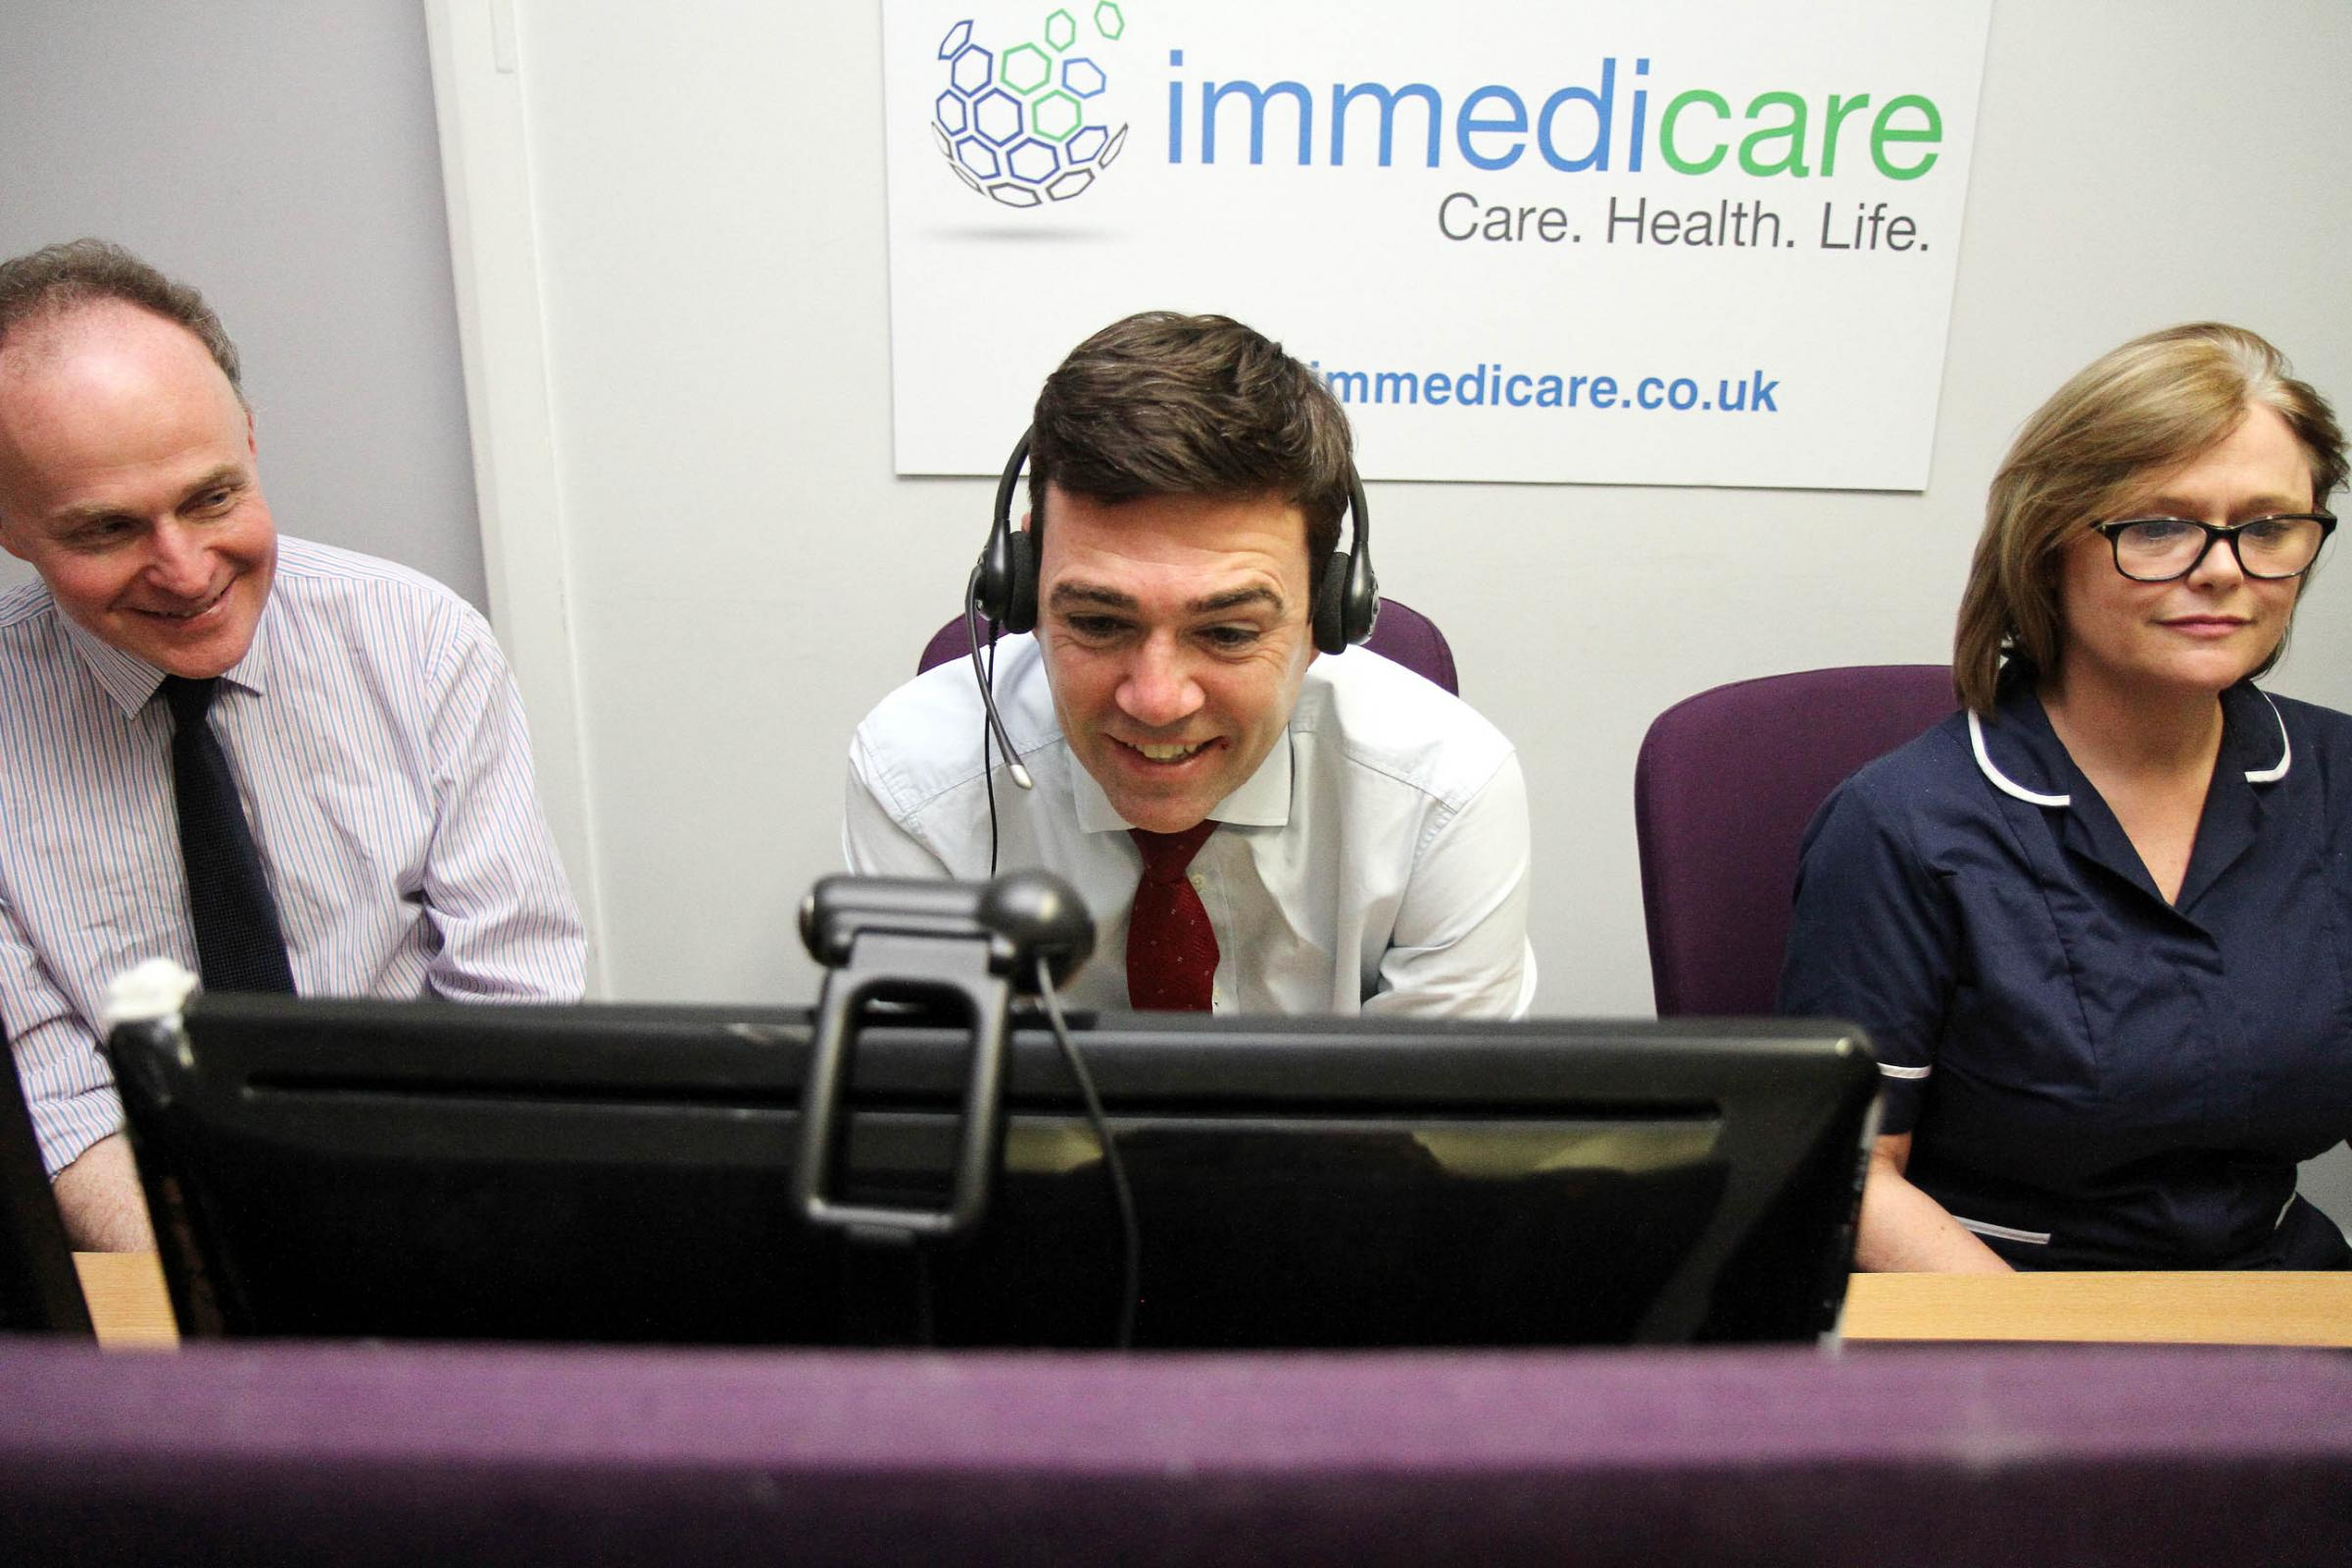 Shadow health secretary Andy Burnham uses the telemedicine system to talk to a patient, with Labour parliamentary candidate for Ilkley and Keighley John Grogan and Sister Alex Blake